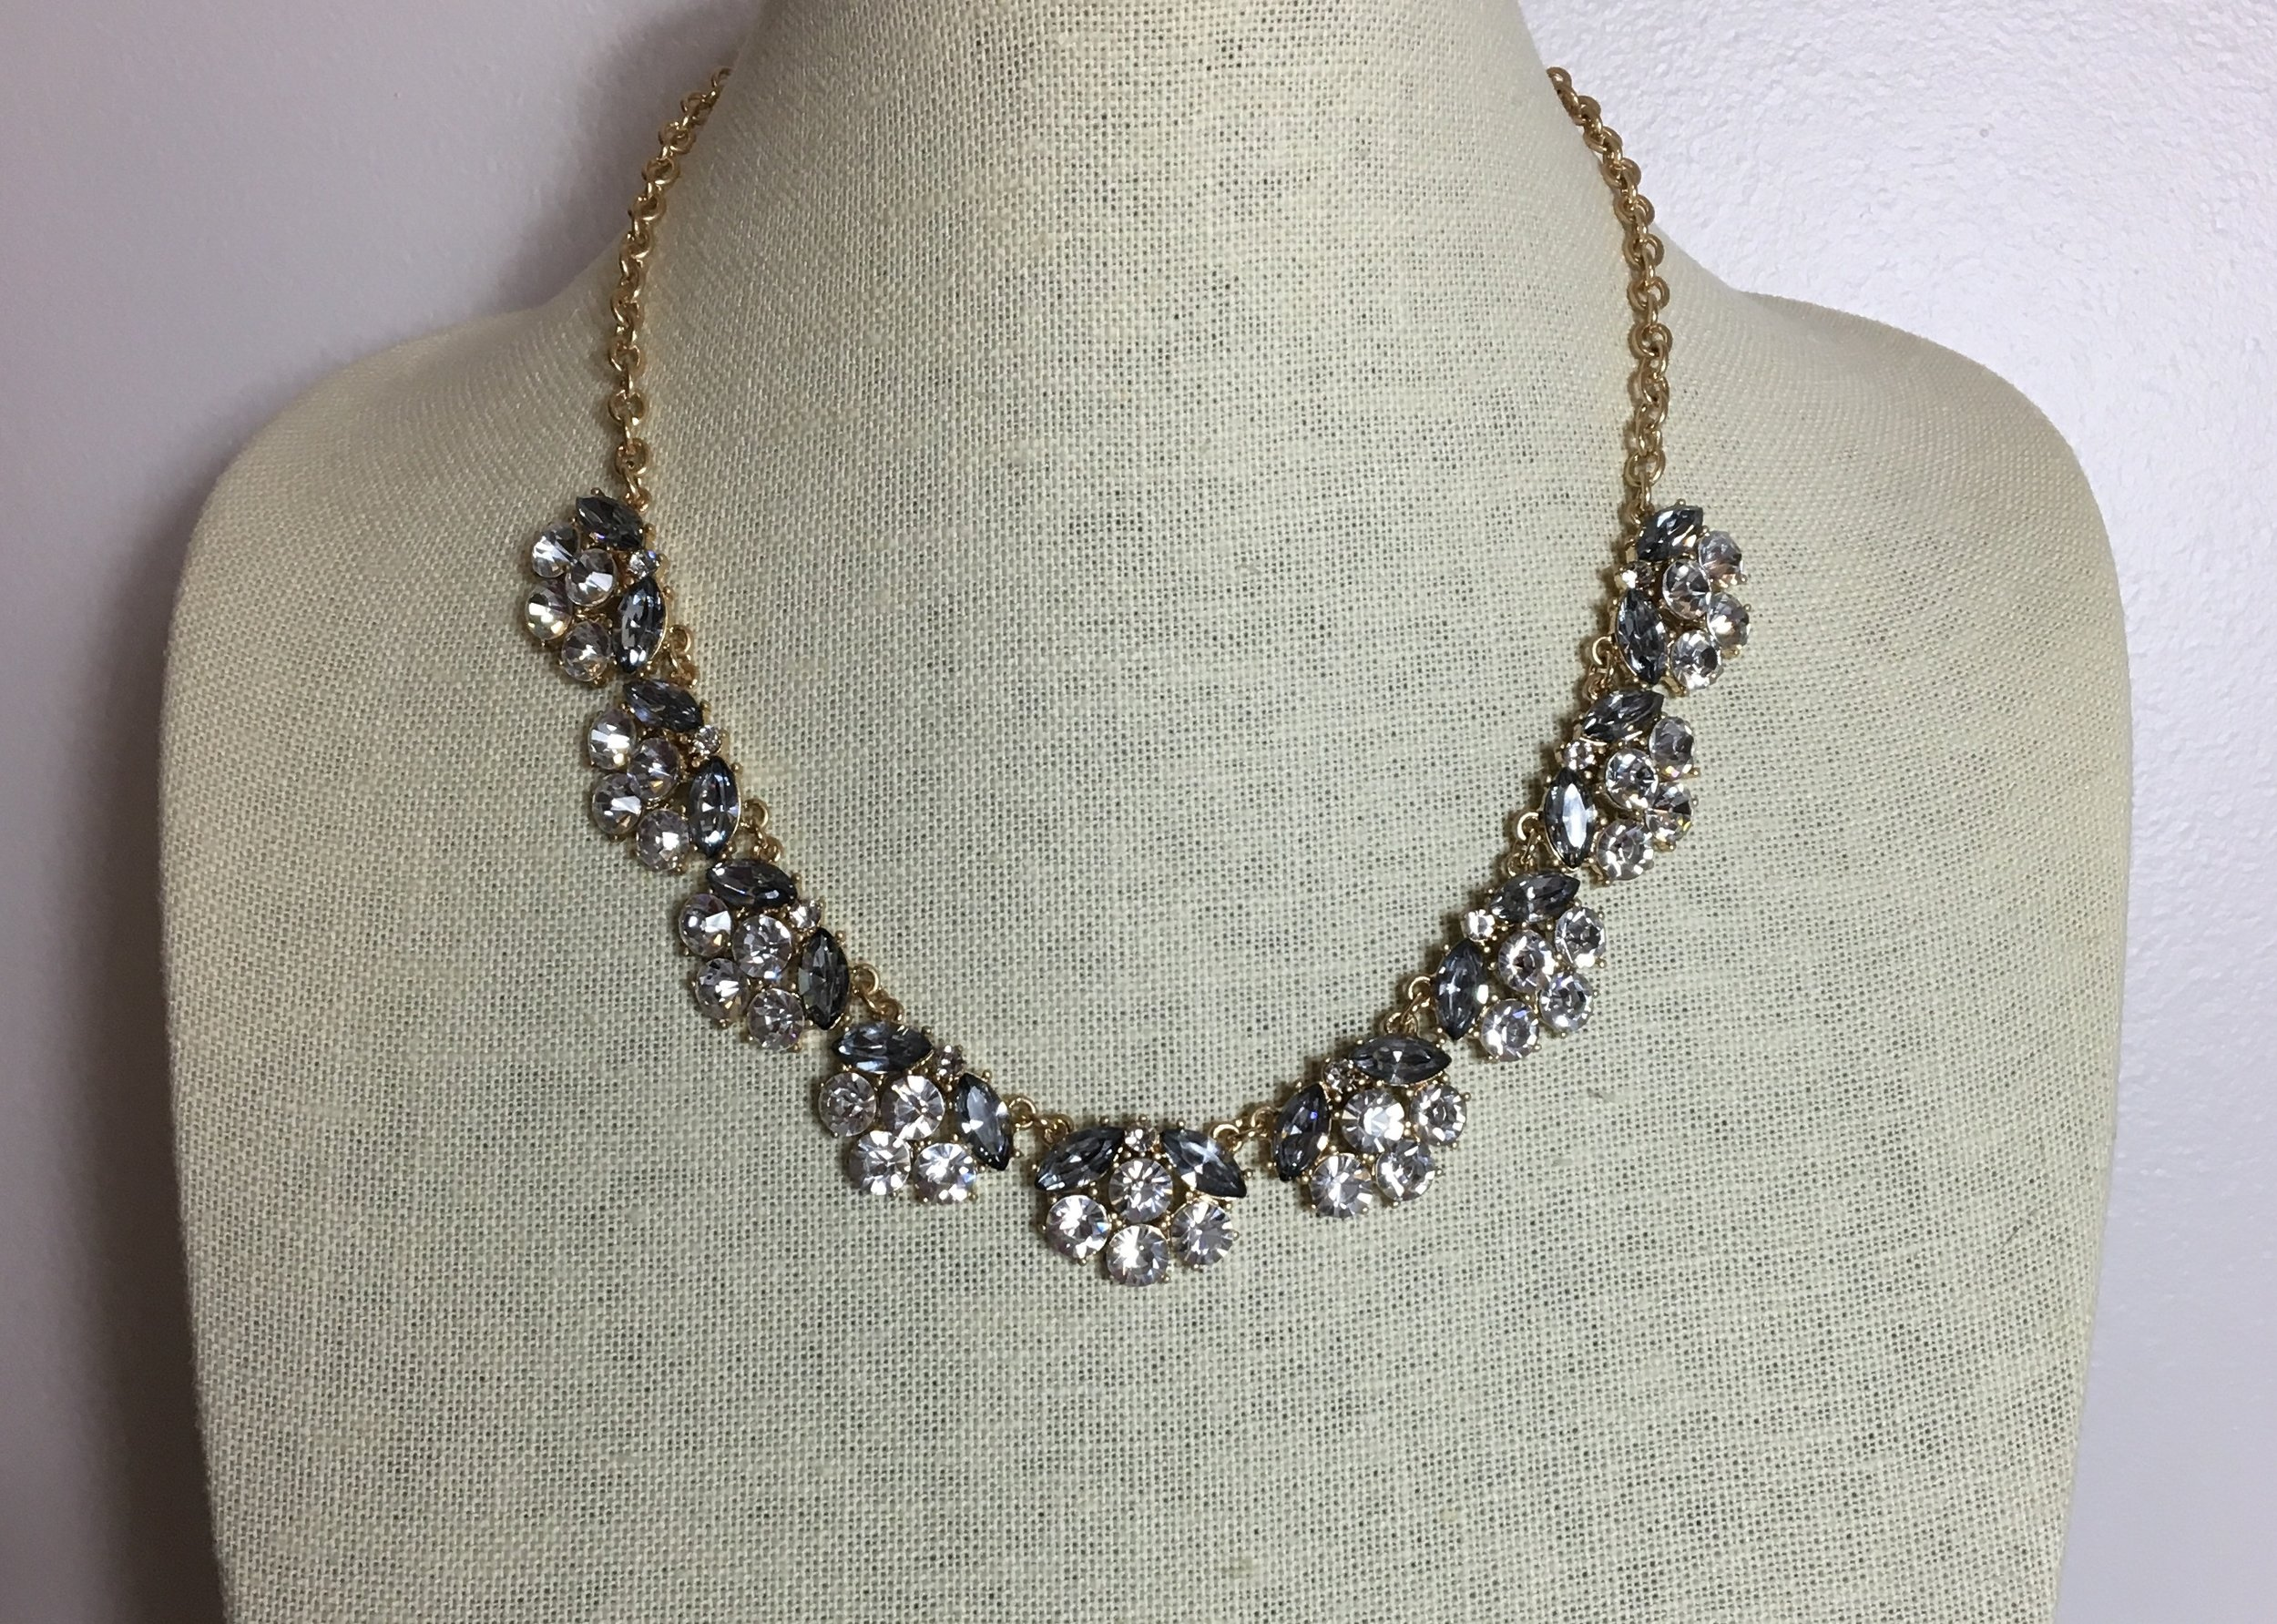 Jetsetter Necklace (Clear) - $34